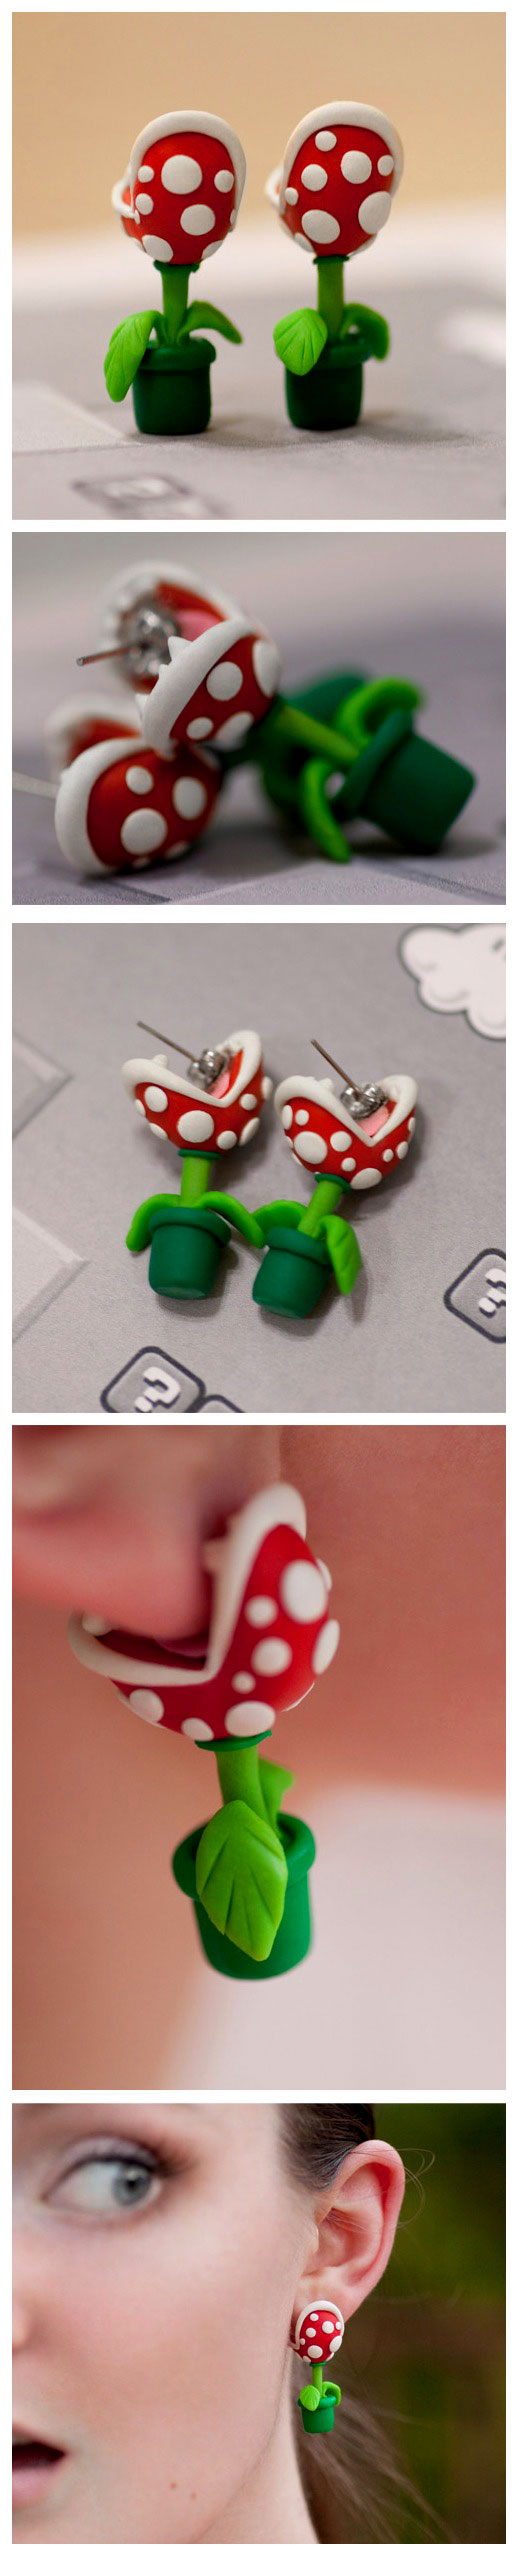 Super Mario Chompie Piranha Plant earrings